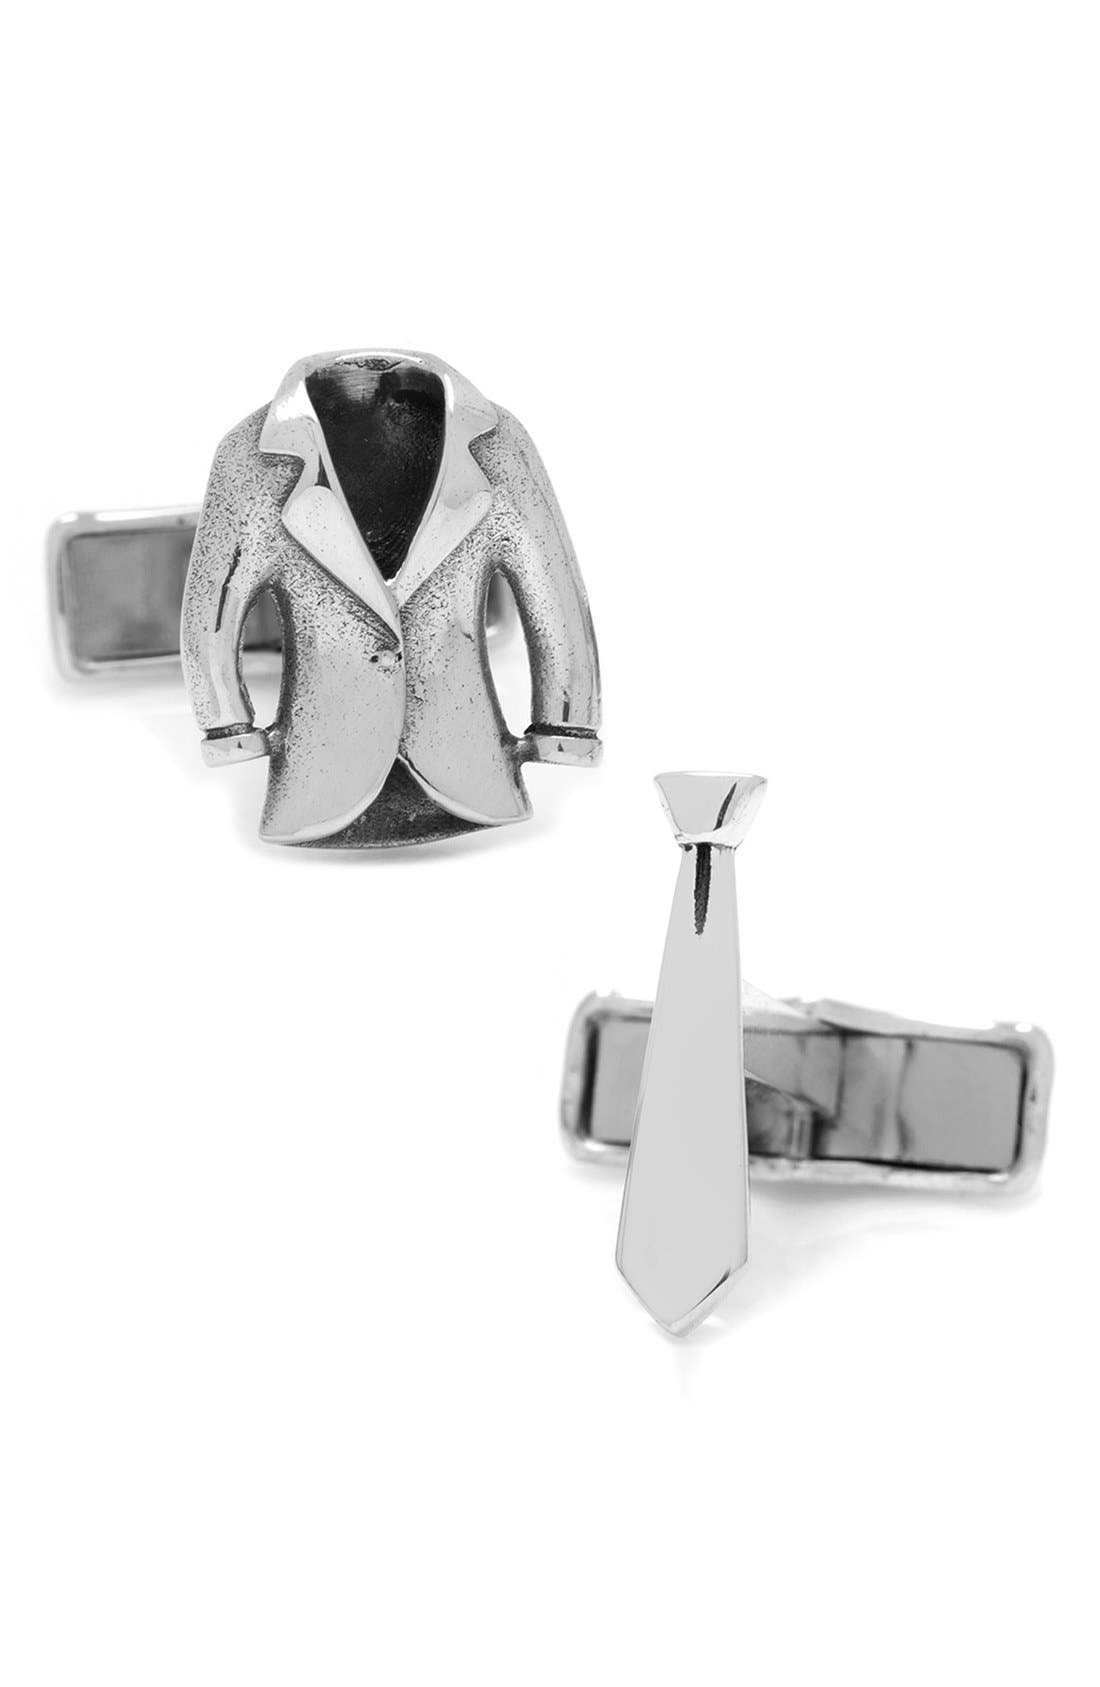 Main Image - Ox and Bull Trading Co. Suit & Tie Cuff Links